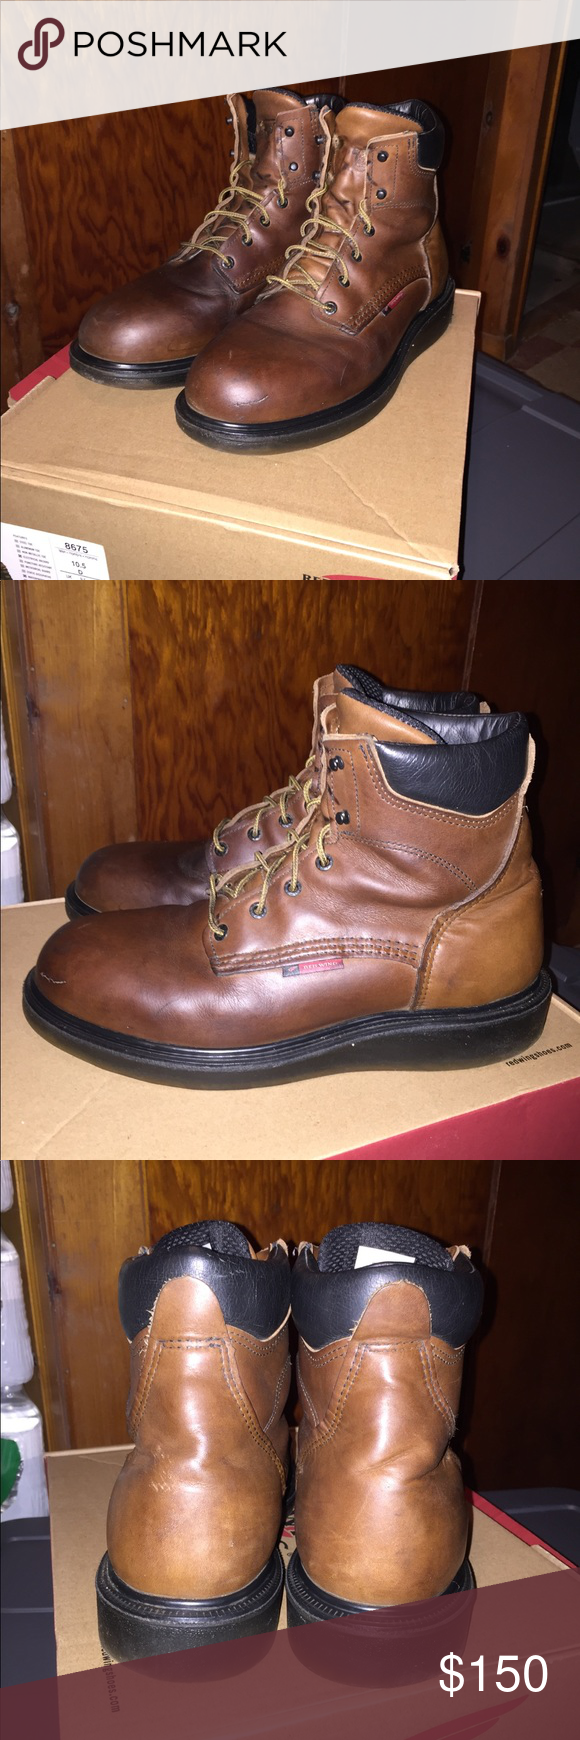 Red Wing Boots 676 Red Wing Work Boots Model 676 Size 10 5 D Width Worn Maybe 10 Times But In Great Condition Red Wing Boots Red Wing Shoes Dress Shoes Men